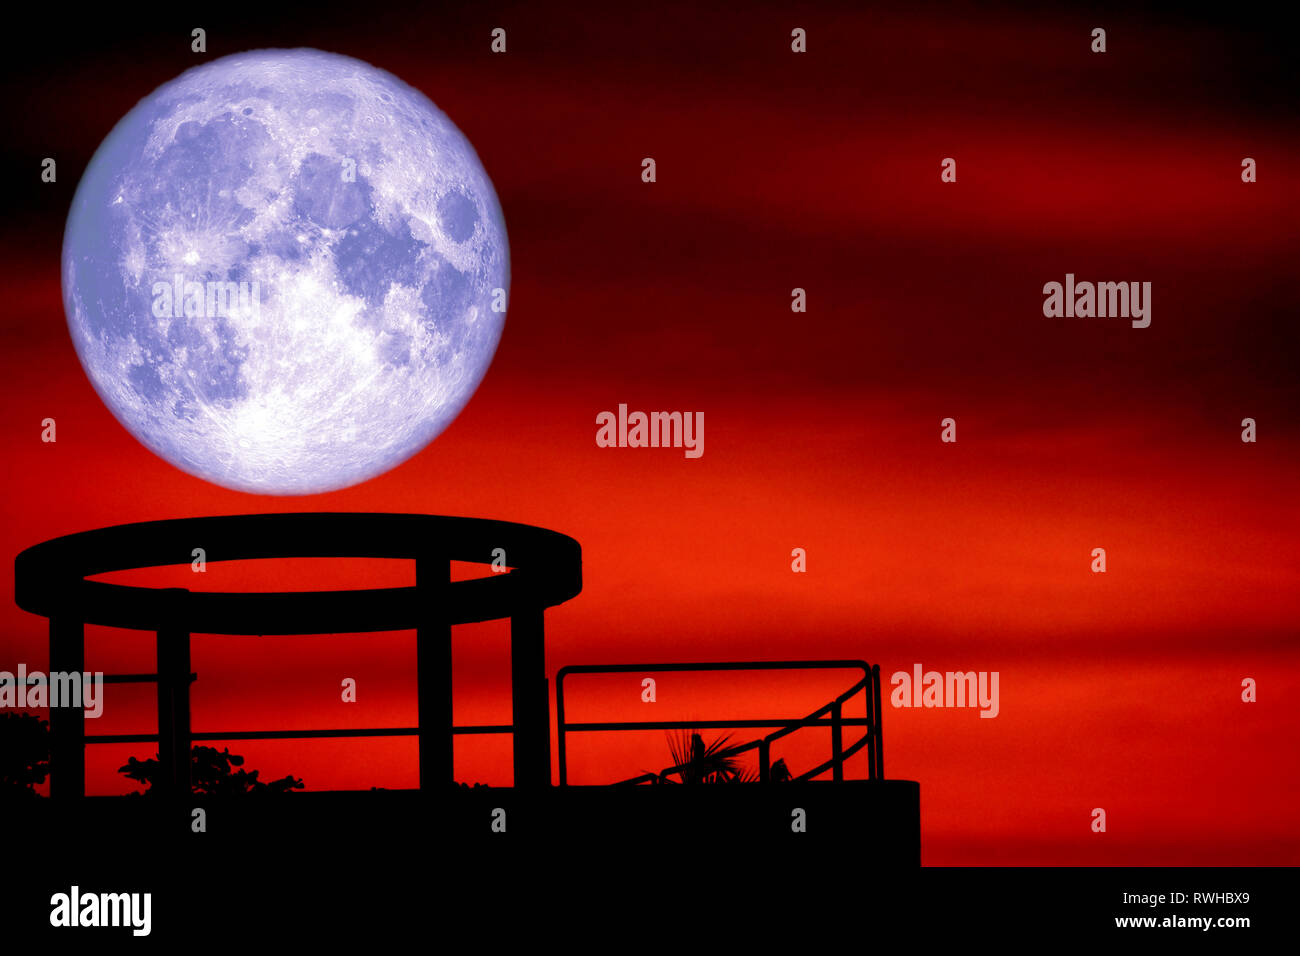 blue moon back over silhouette cycle on roof of building and night red sky, Elements of this image furnished by NASA - Stock Image